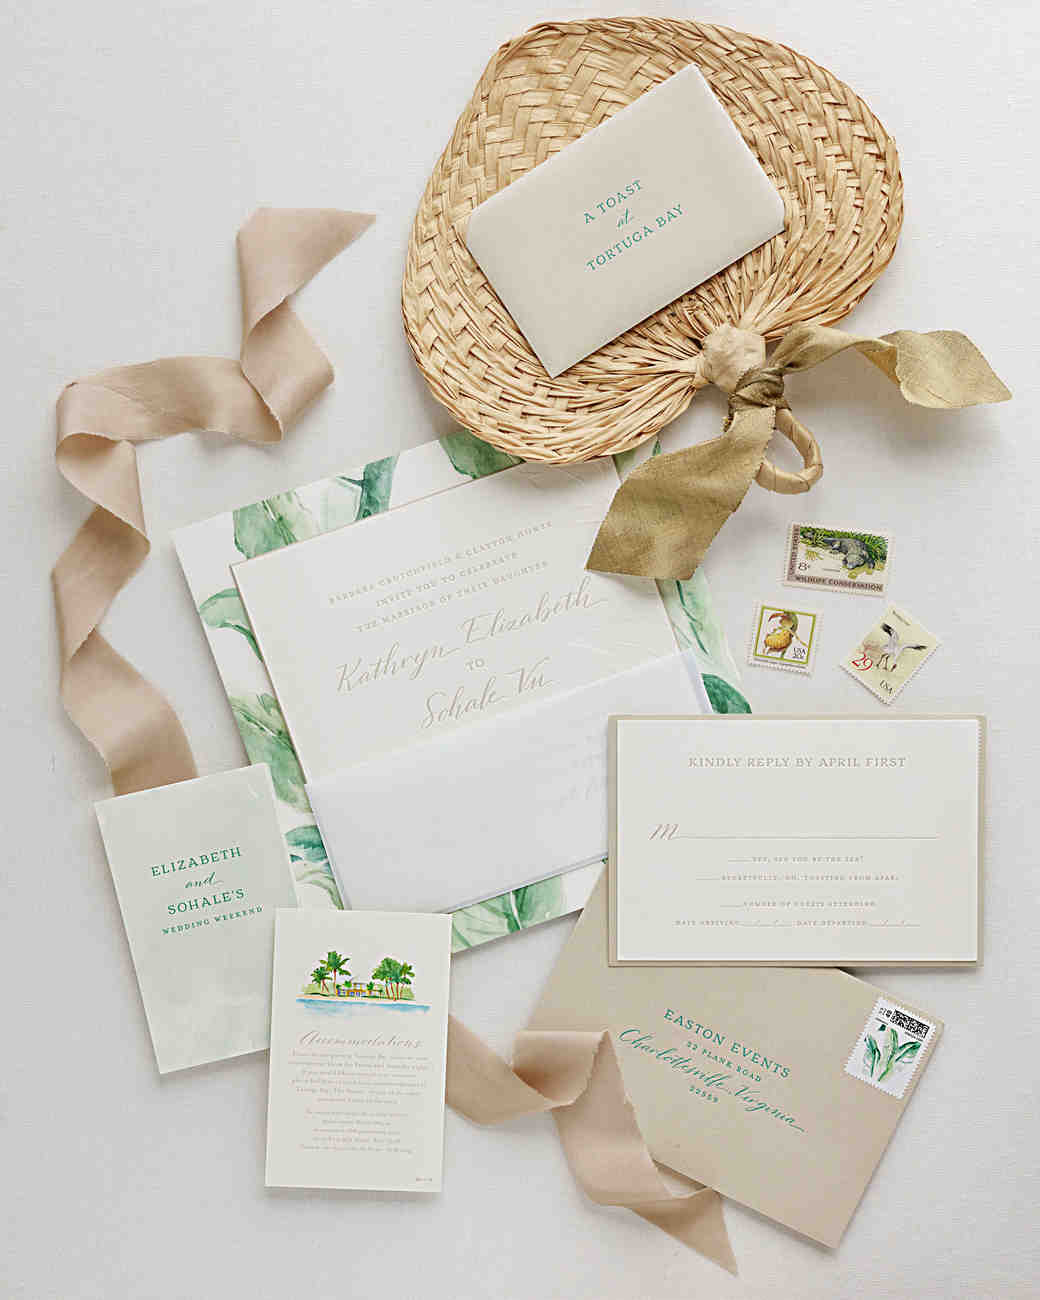 elizabeth sohale wedding dominican republic invitation suite